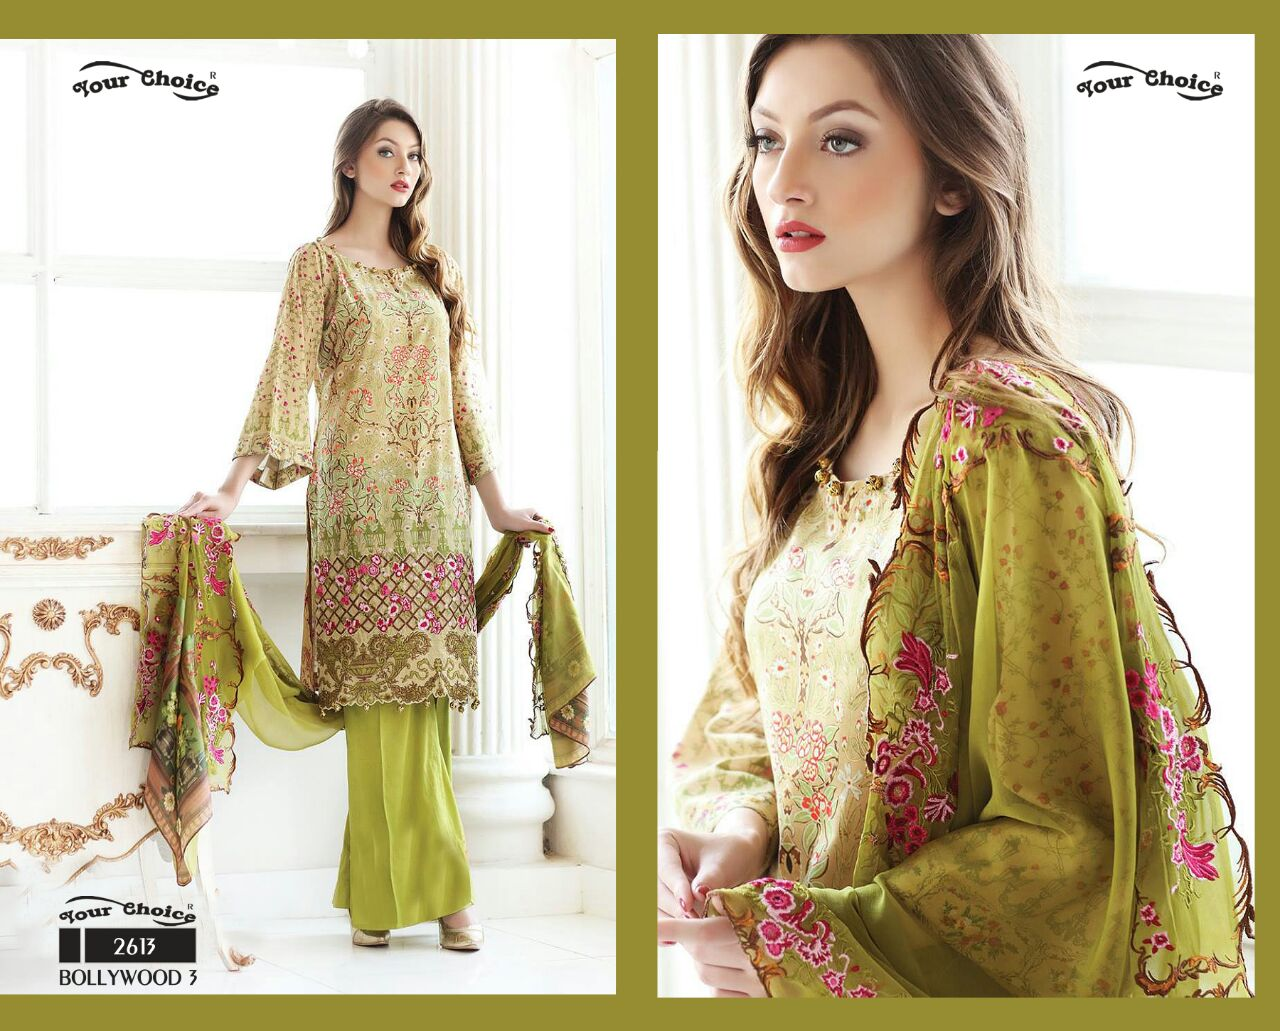 Bollywood 3 – Better And Best Quality Of Glass Cotton Salwar Kameez